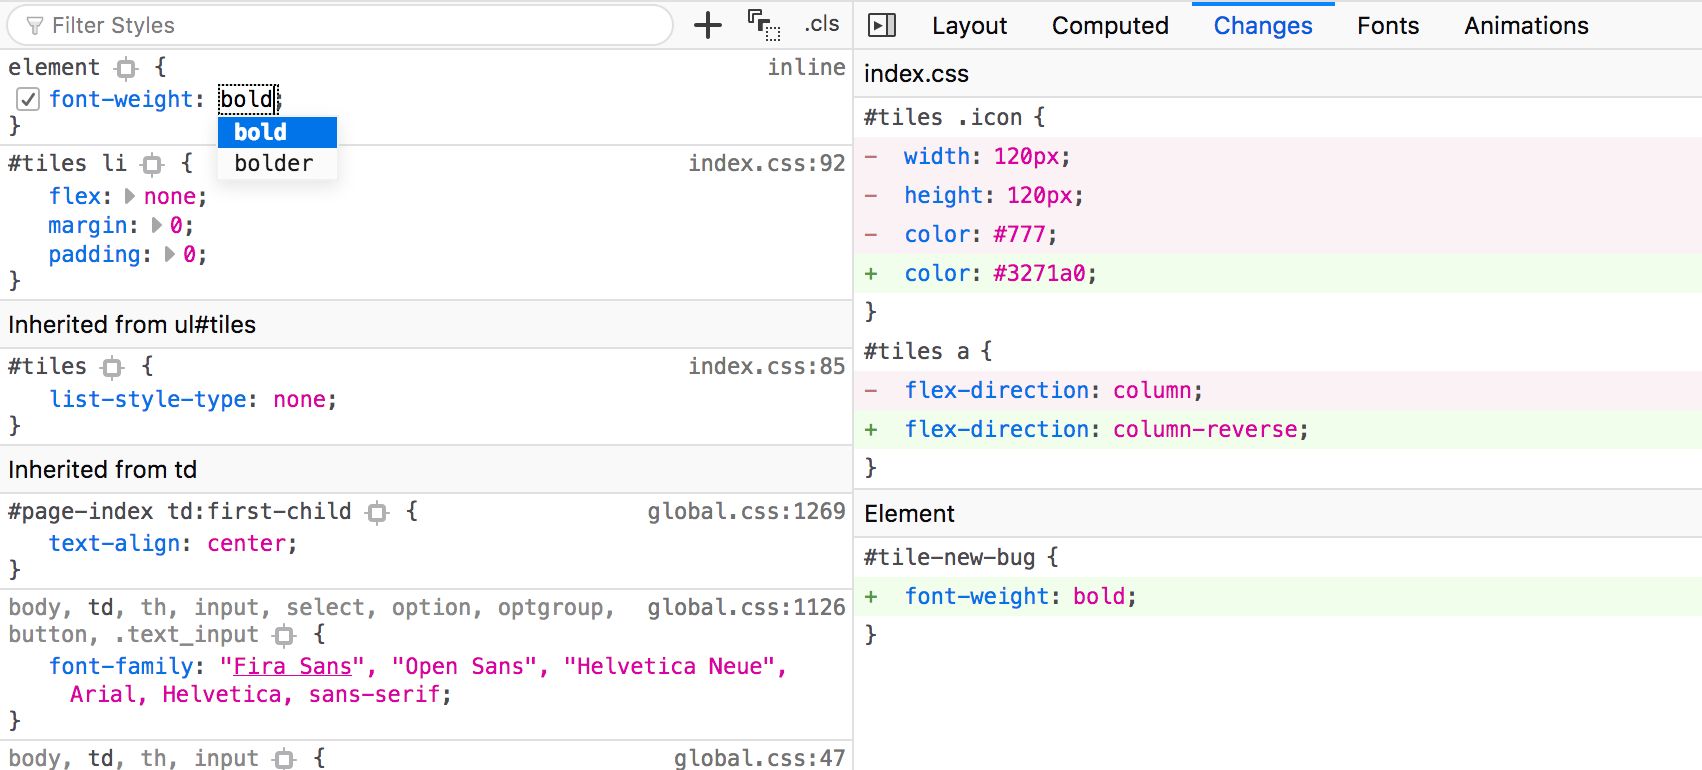 New changes panel showing additions, deletions and modifications of CSS as diff.